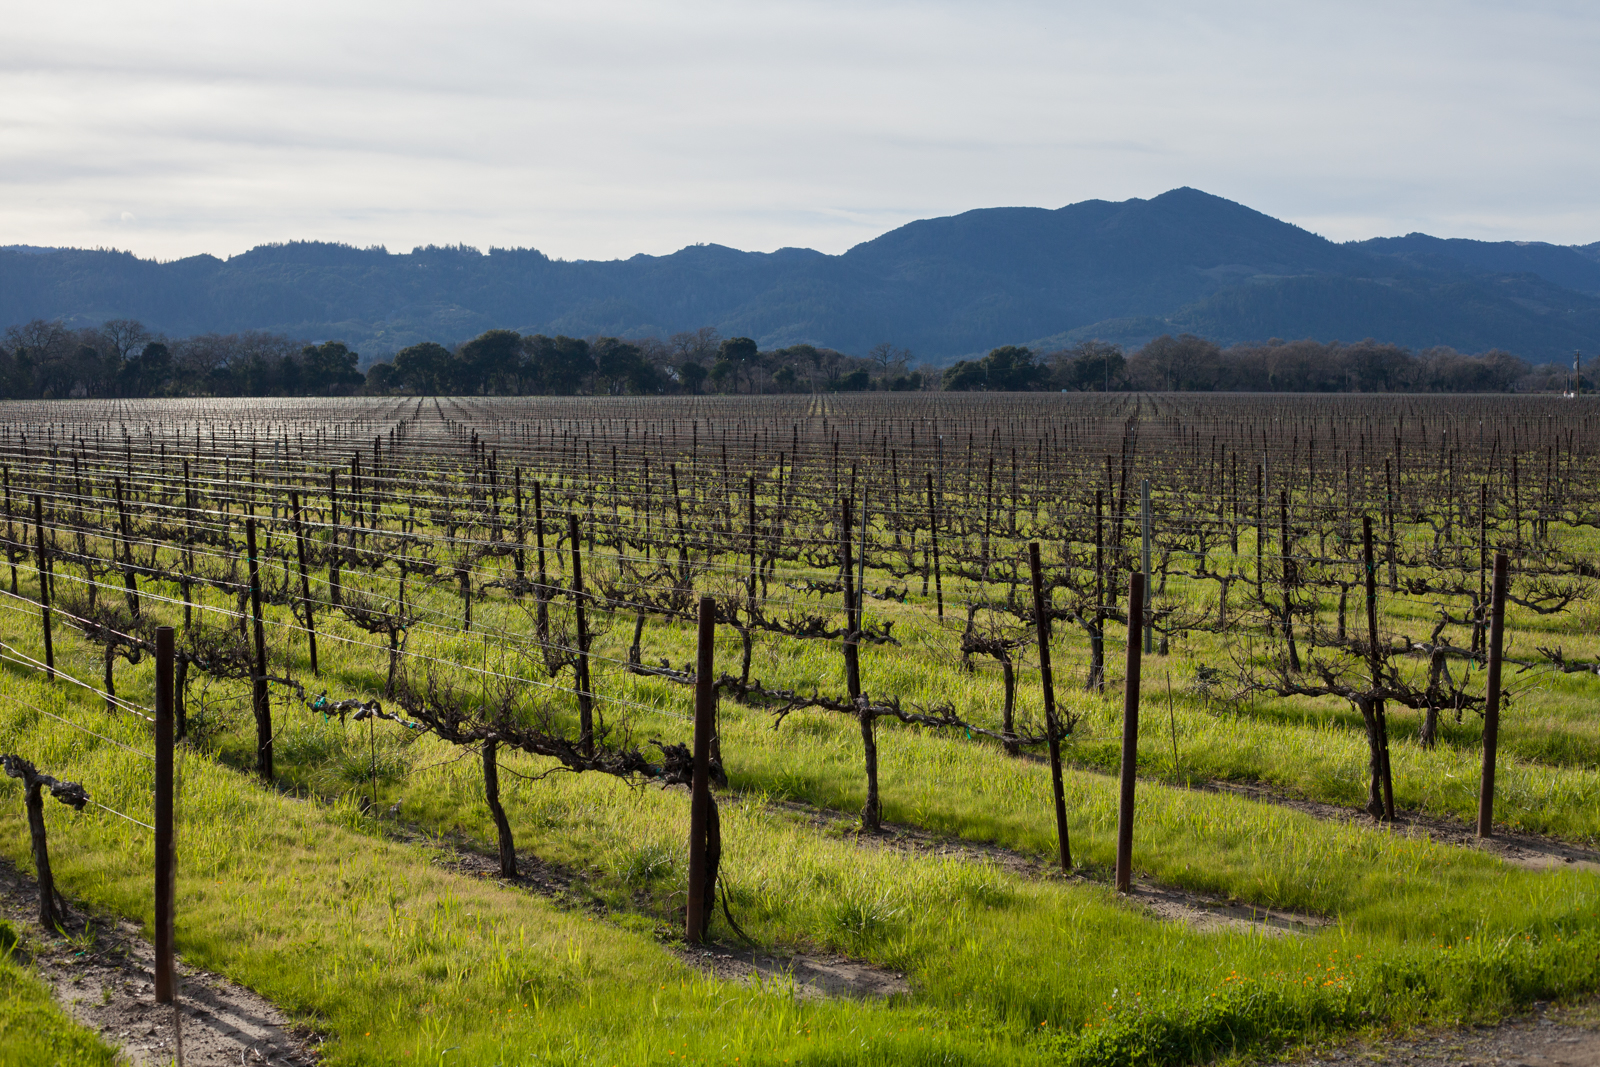 The Gamble Vineyard soaks up late winter sun in the heart of Napa Valley. ©Kevin Day / Opening a Bottle